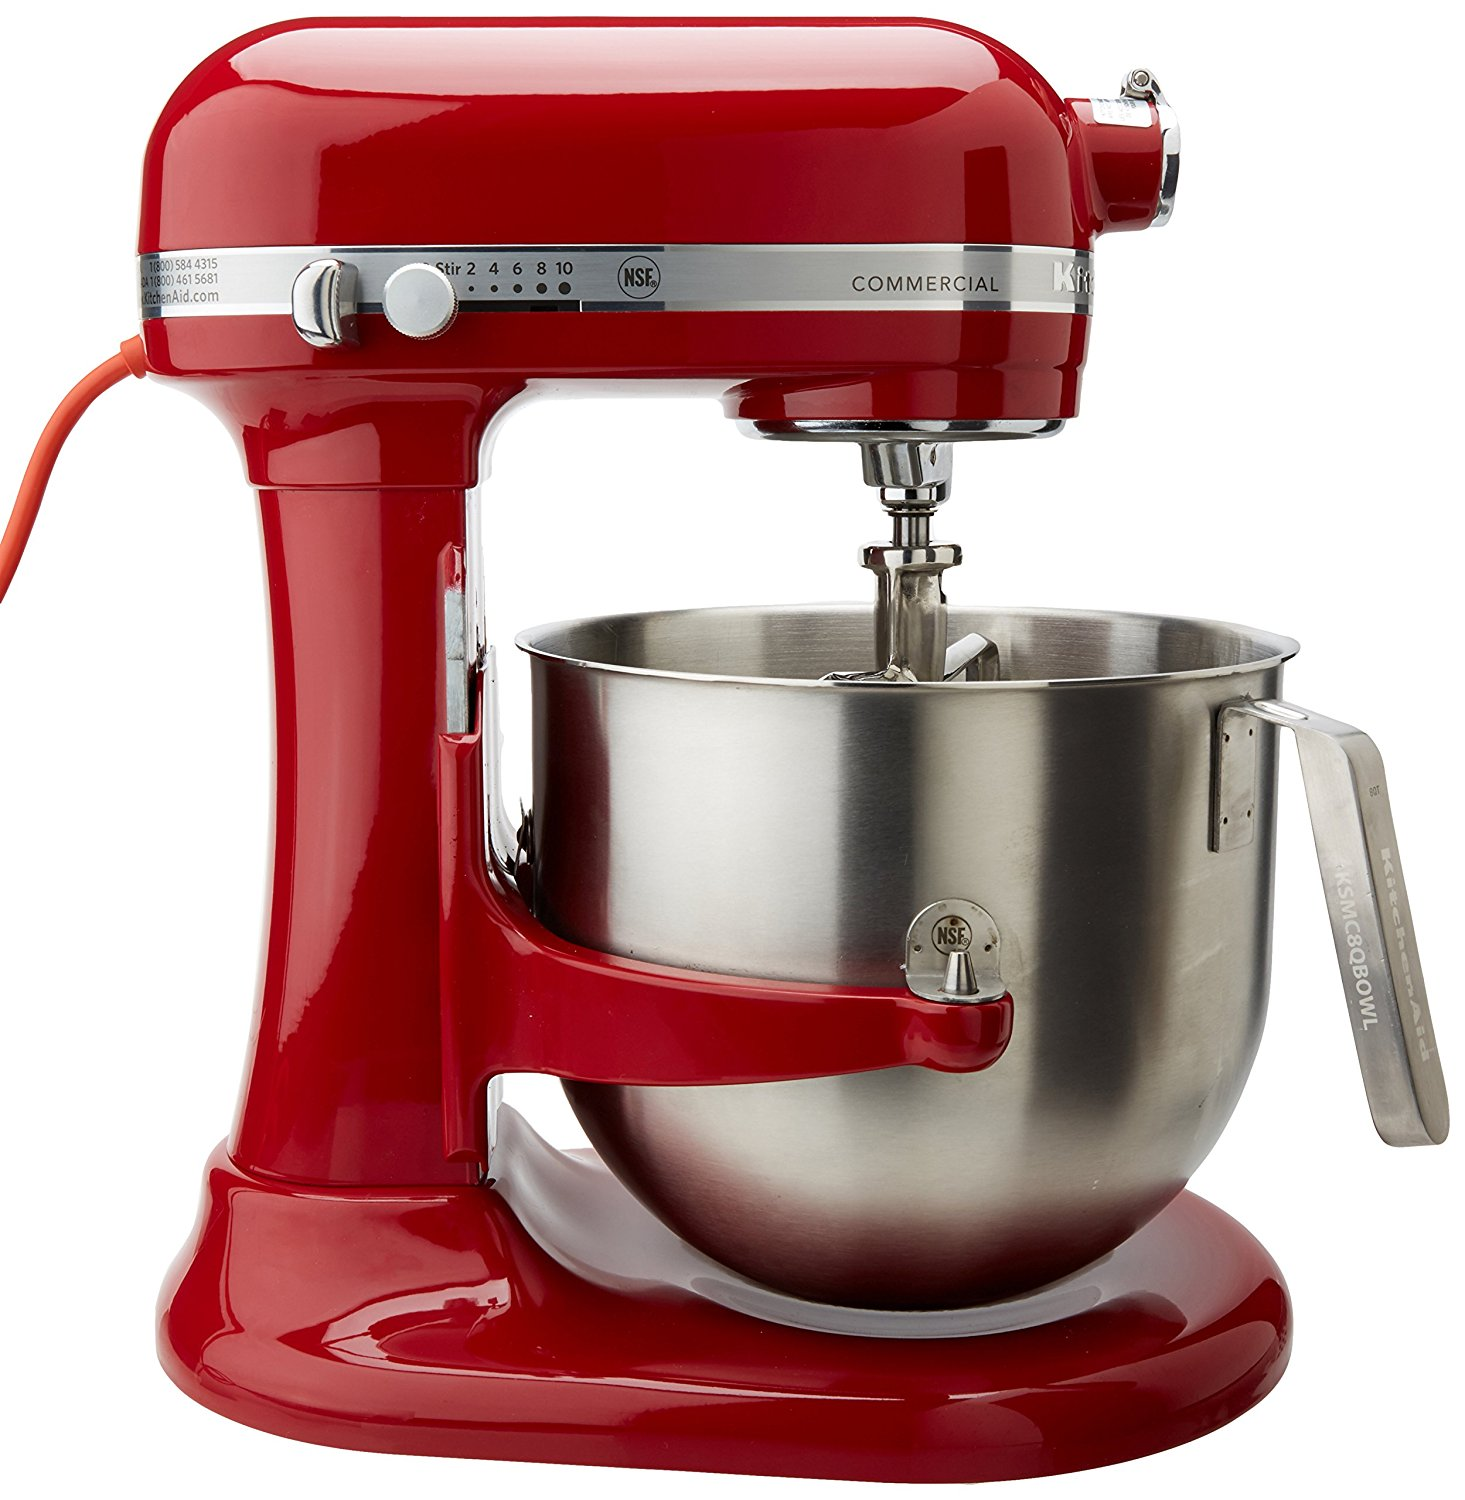 Best Stand Mixer For Bread Dough The Homester